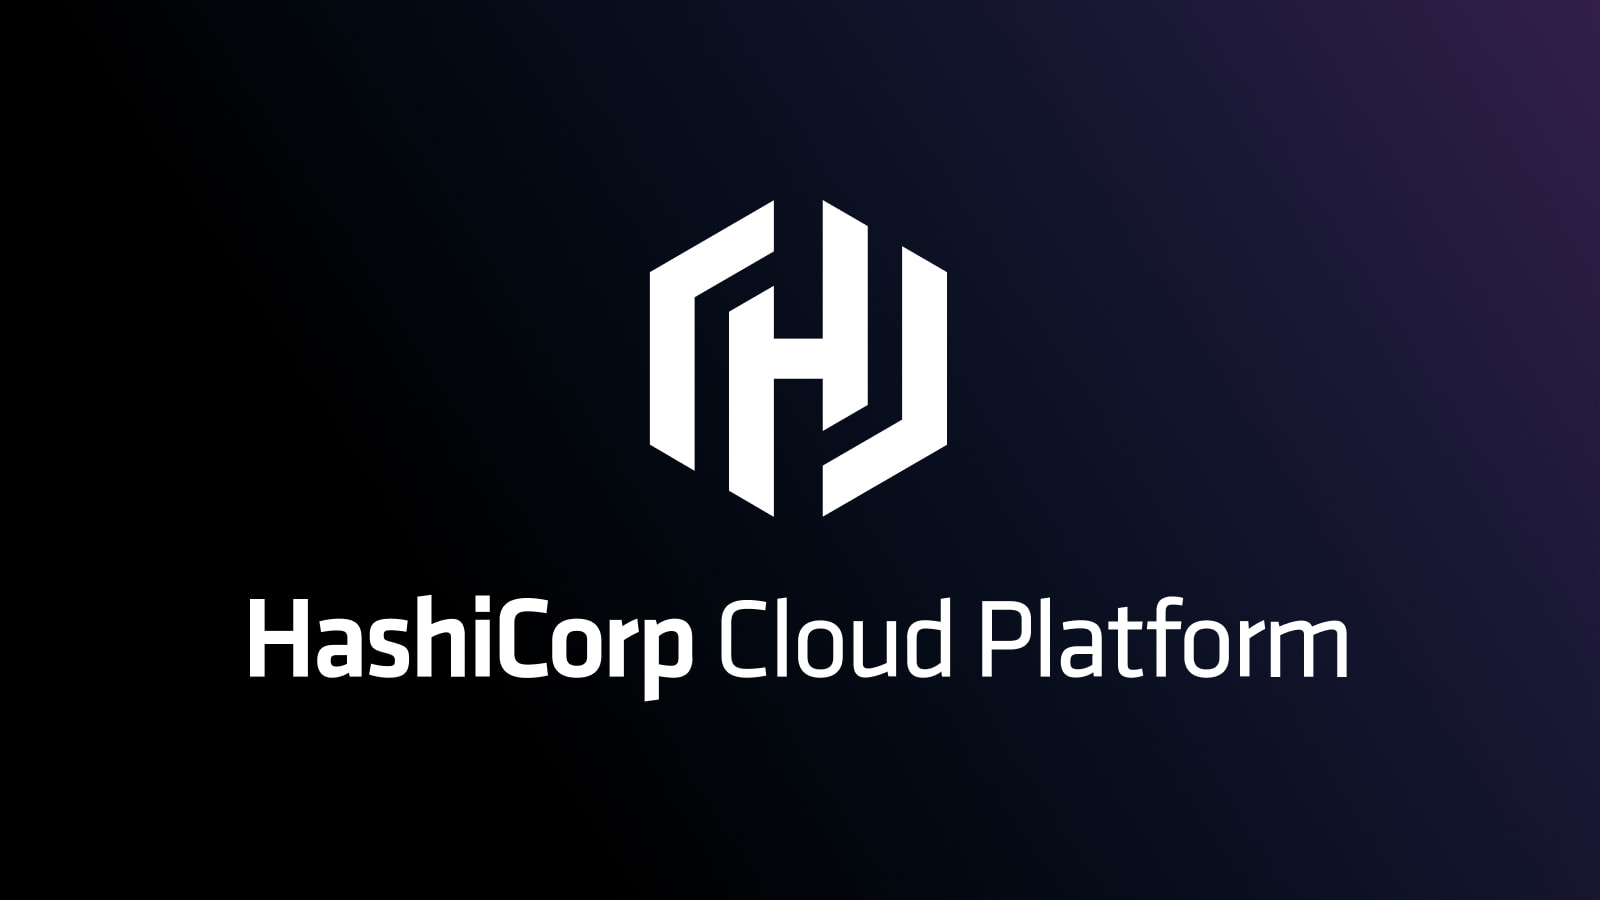 HashiCorp Cloud Platform Adds Transit Gateway, Okta Support, New Packages